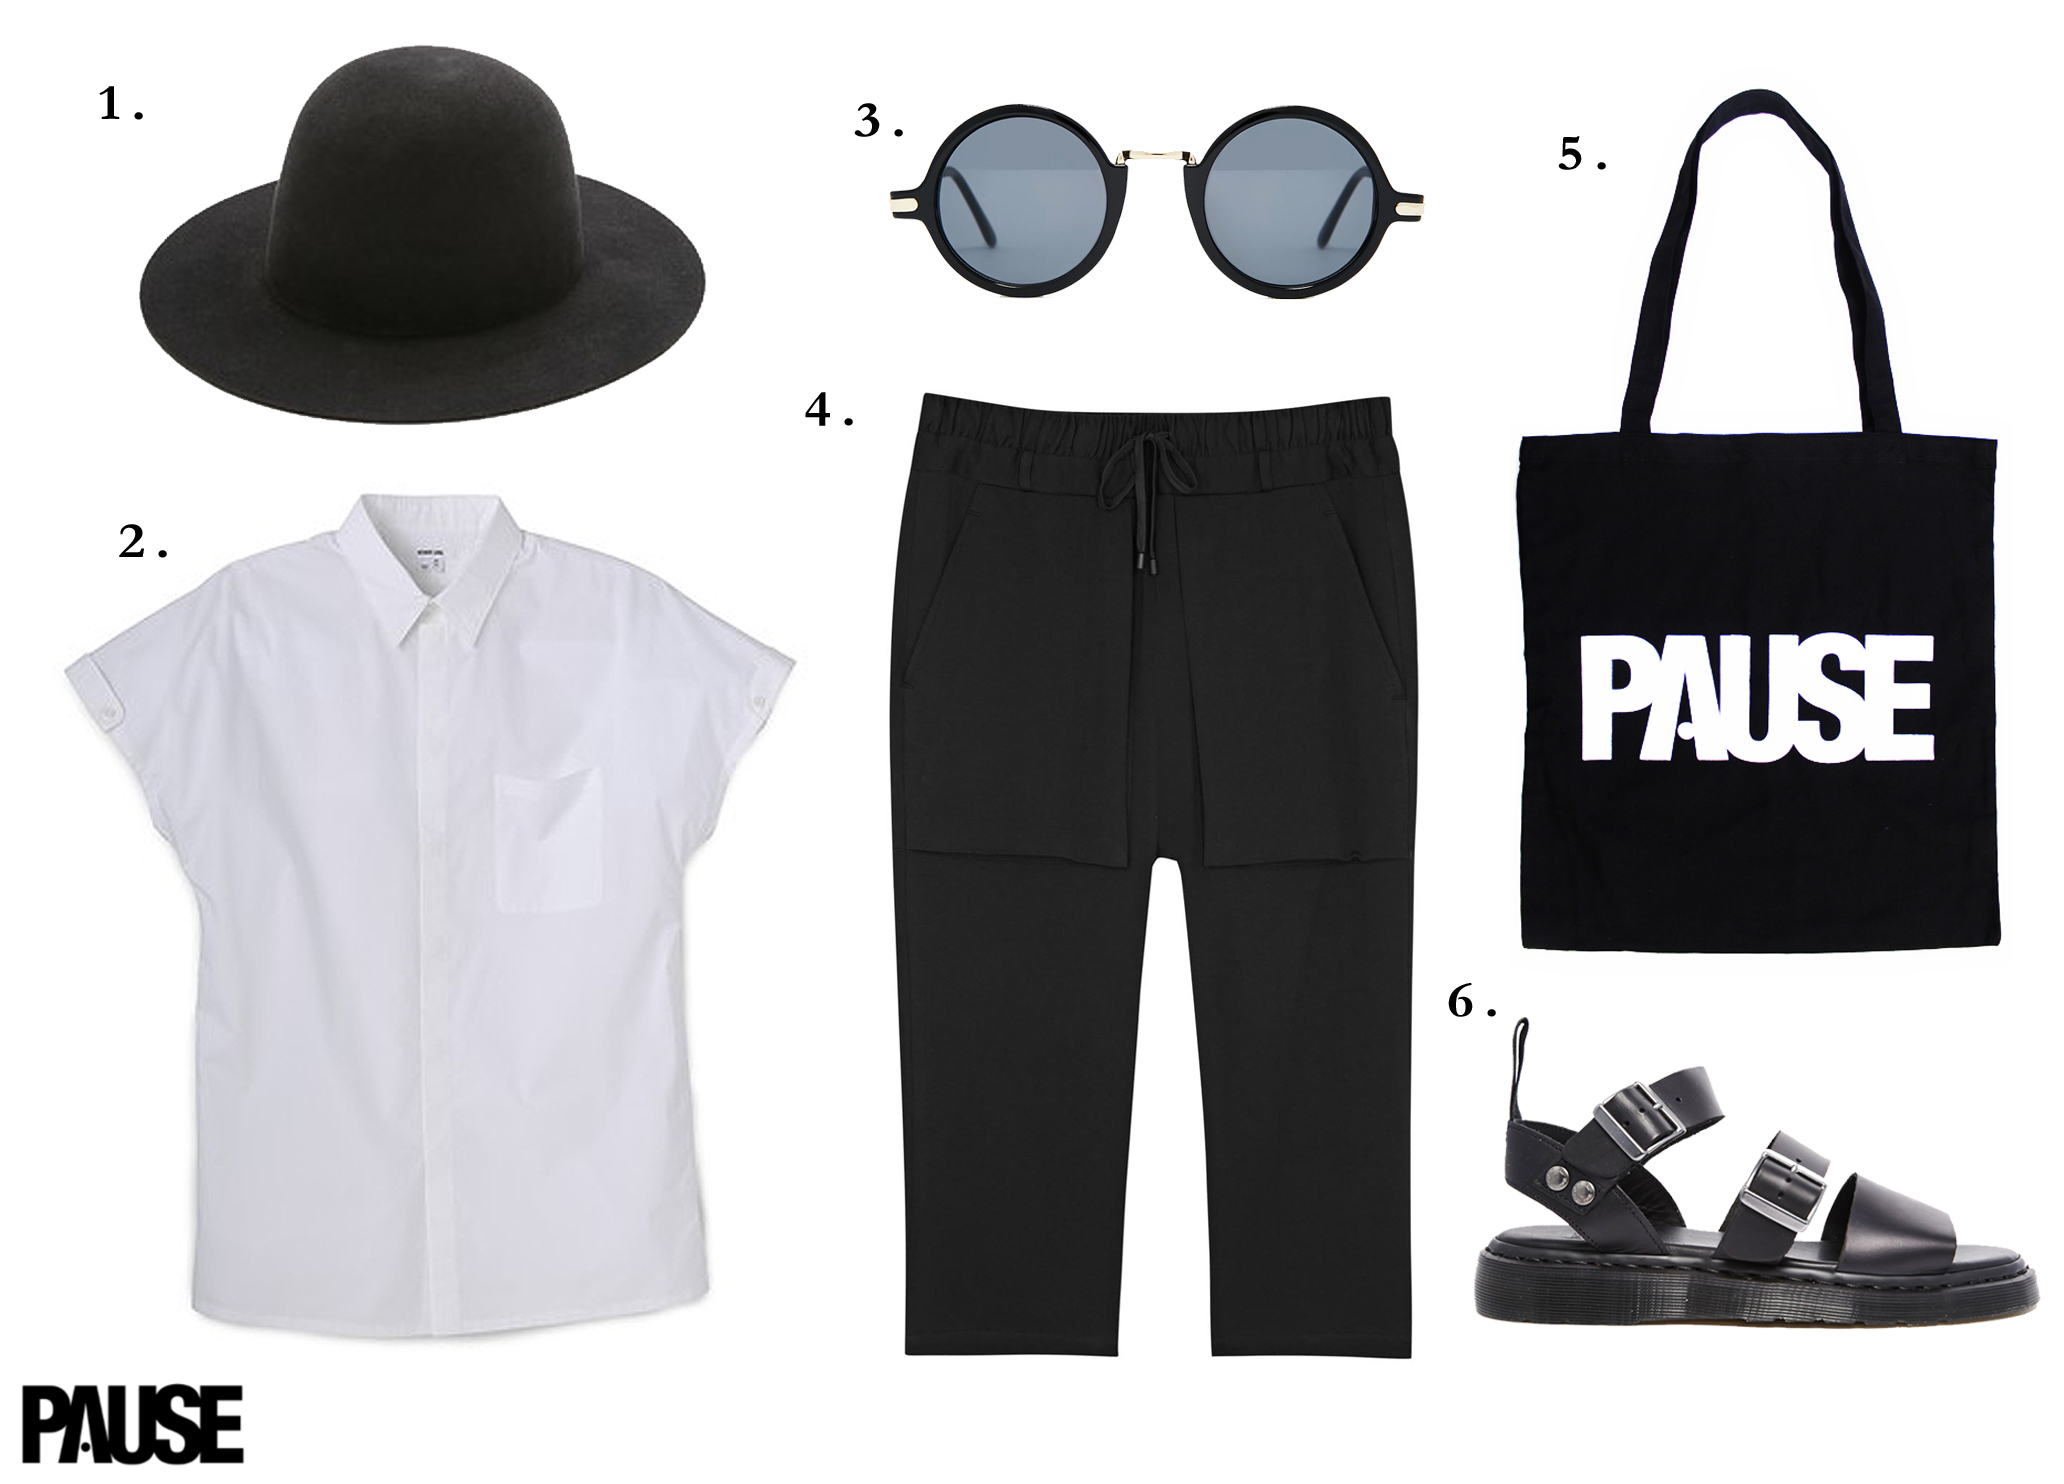 PAUSE Outfit Of The Week: Minimal